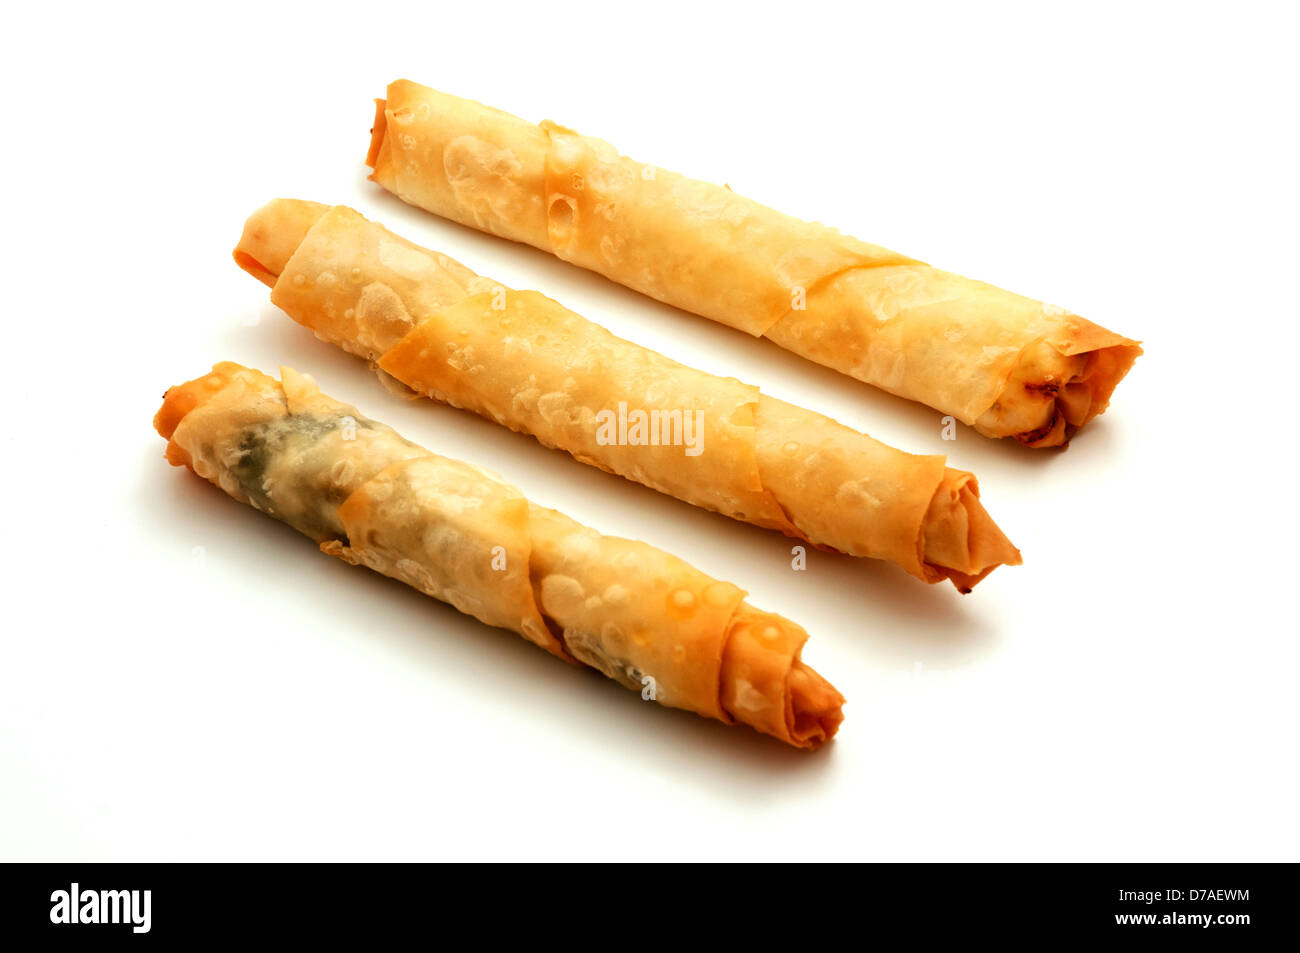 Sigara böreği (cigarette börek) on a white background Stock Photo